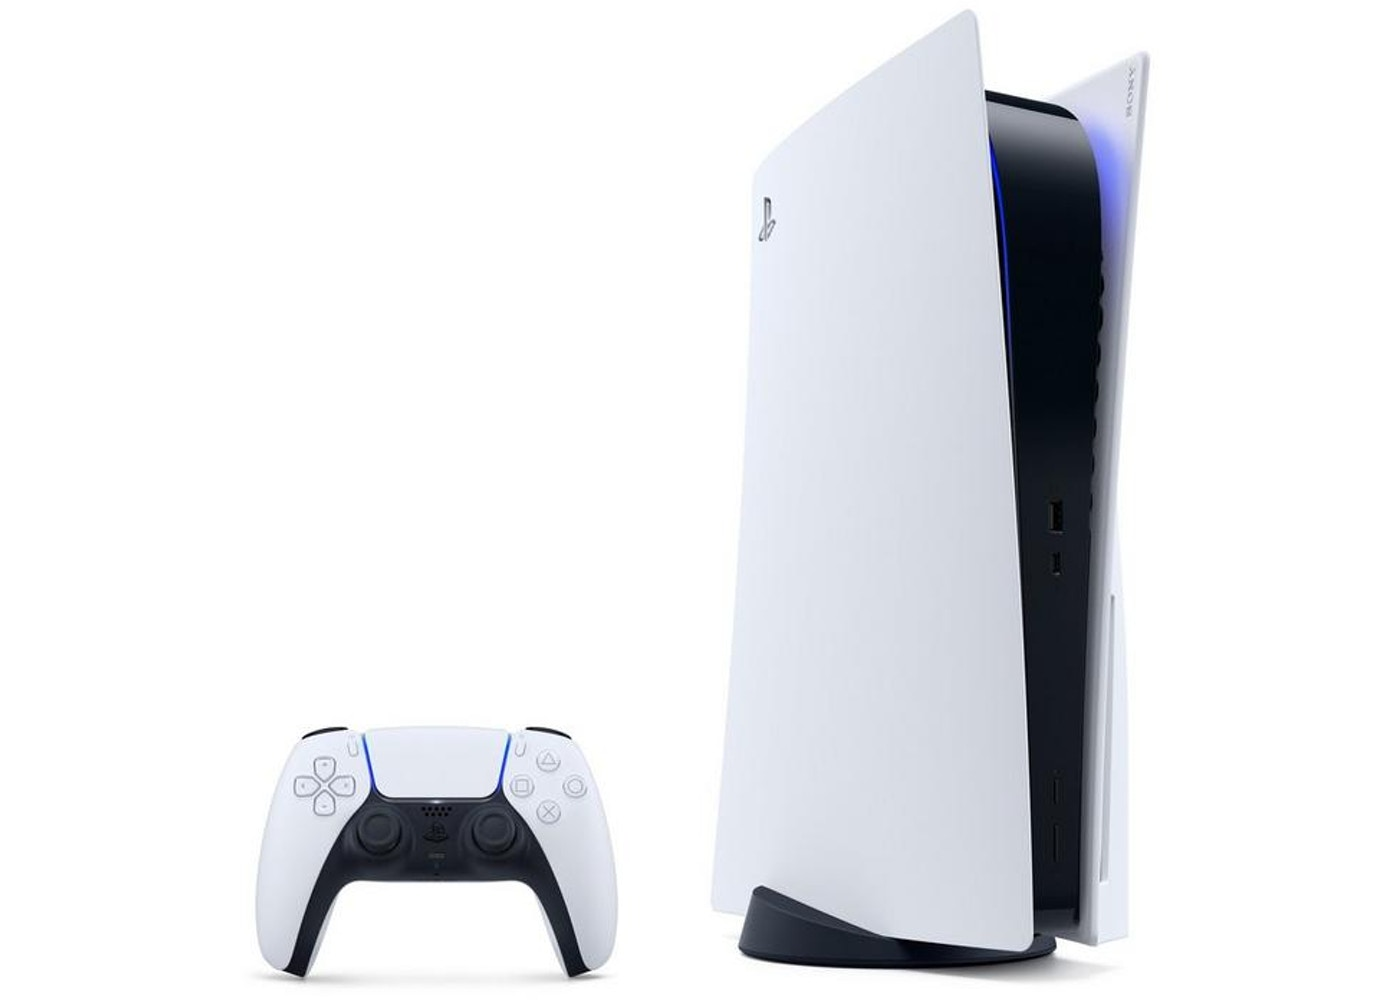 https://phone-station.com/category/playstation-5-bluray-edition-114_115